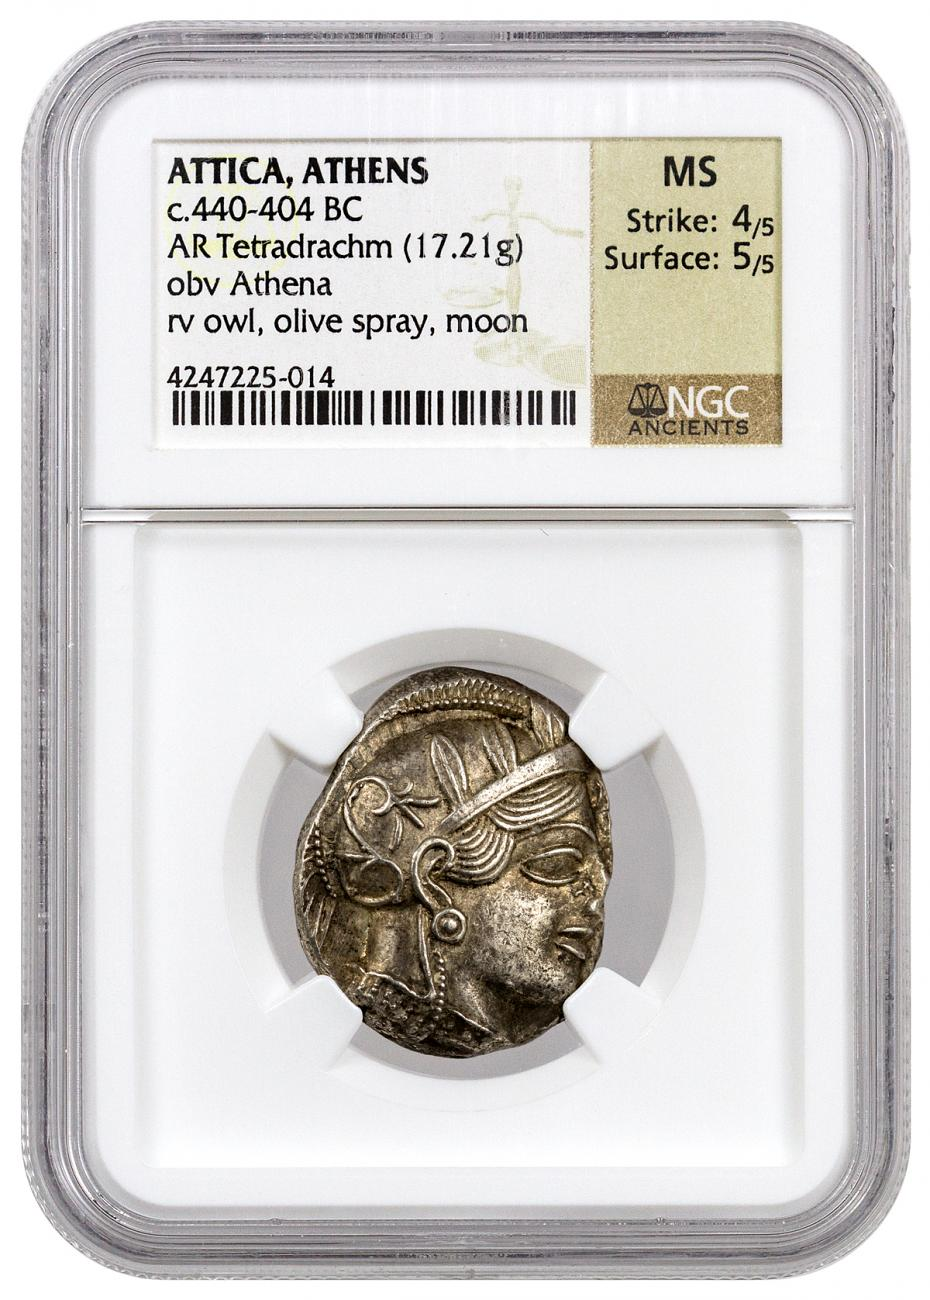 Greek City-State of Athens Silver Tetradrachm - Athena and Owl c. 440-404 BC NGC MS (Strike: 4/5 - Surface: 5/5)